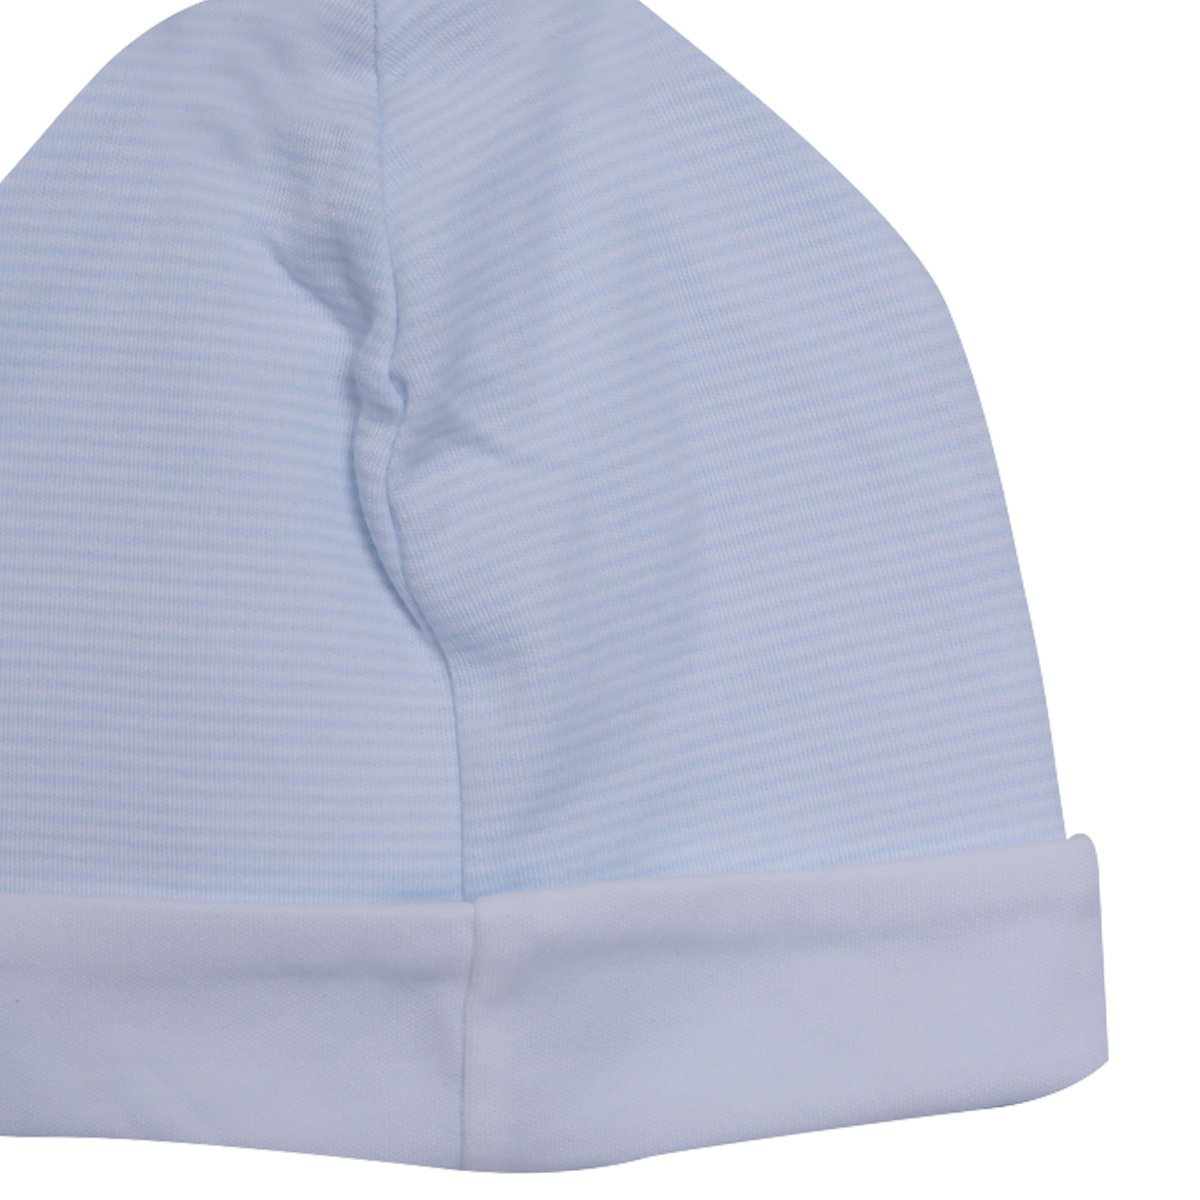 Kissy Kissy -  Trunk Mates Hat For Boys, White/Light Blue